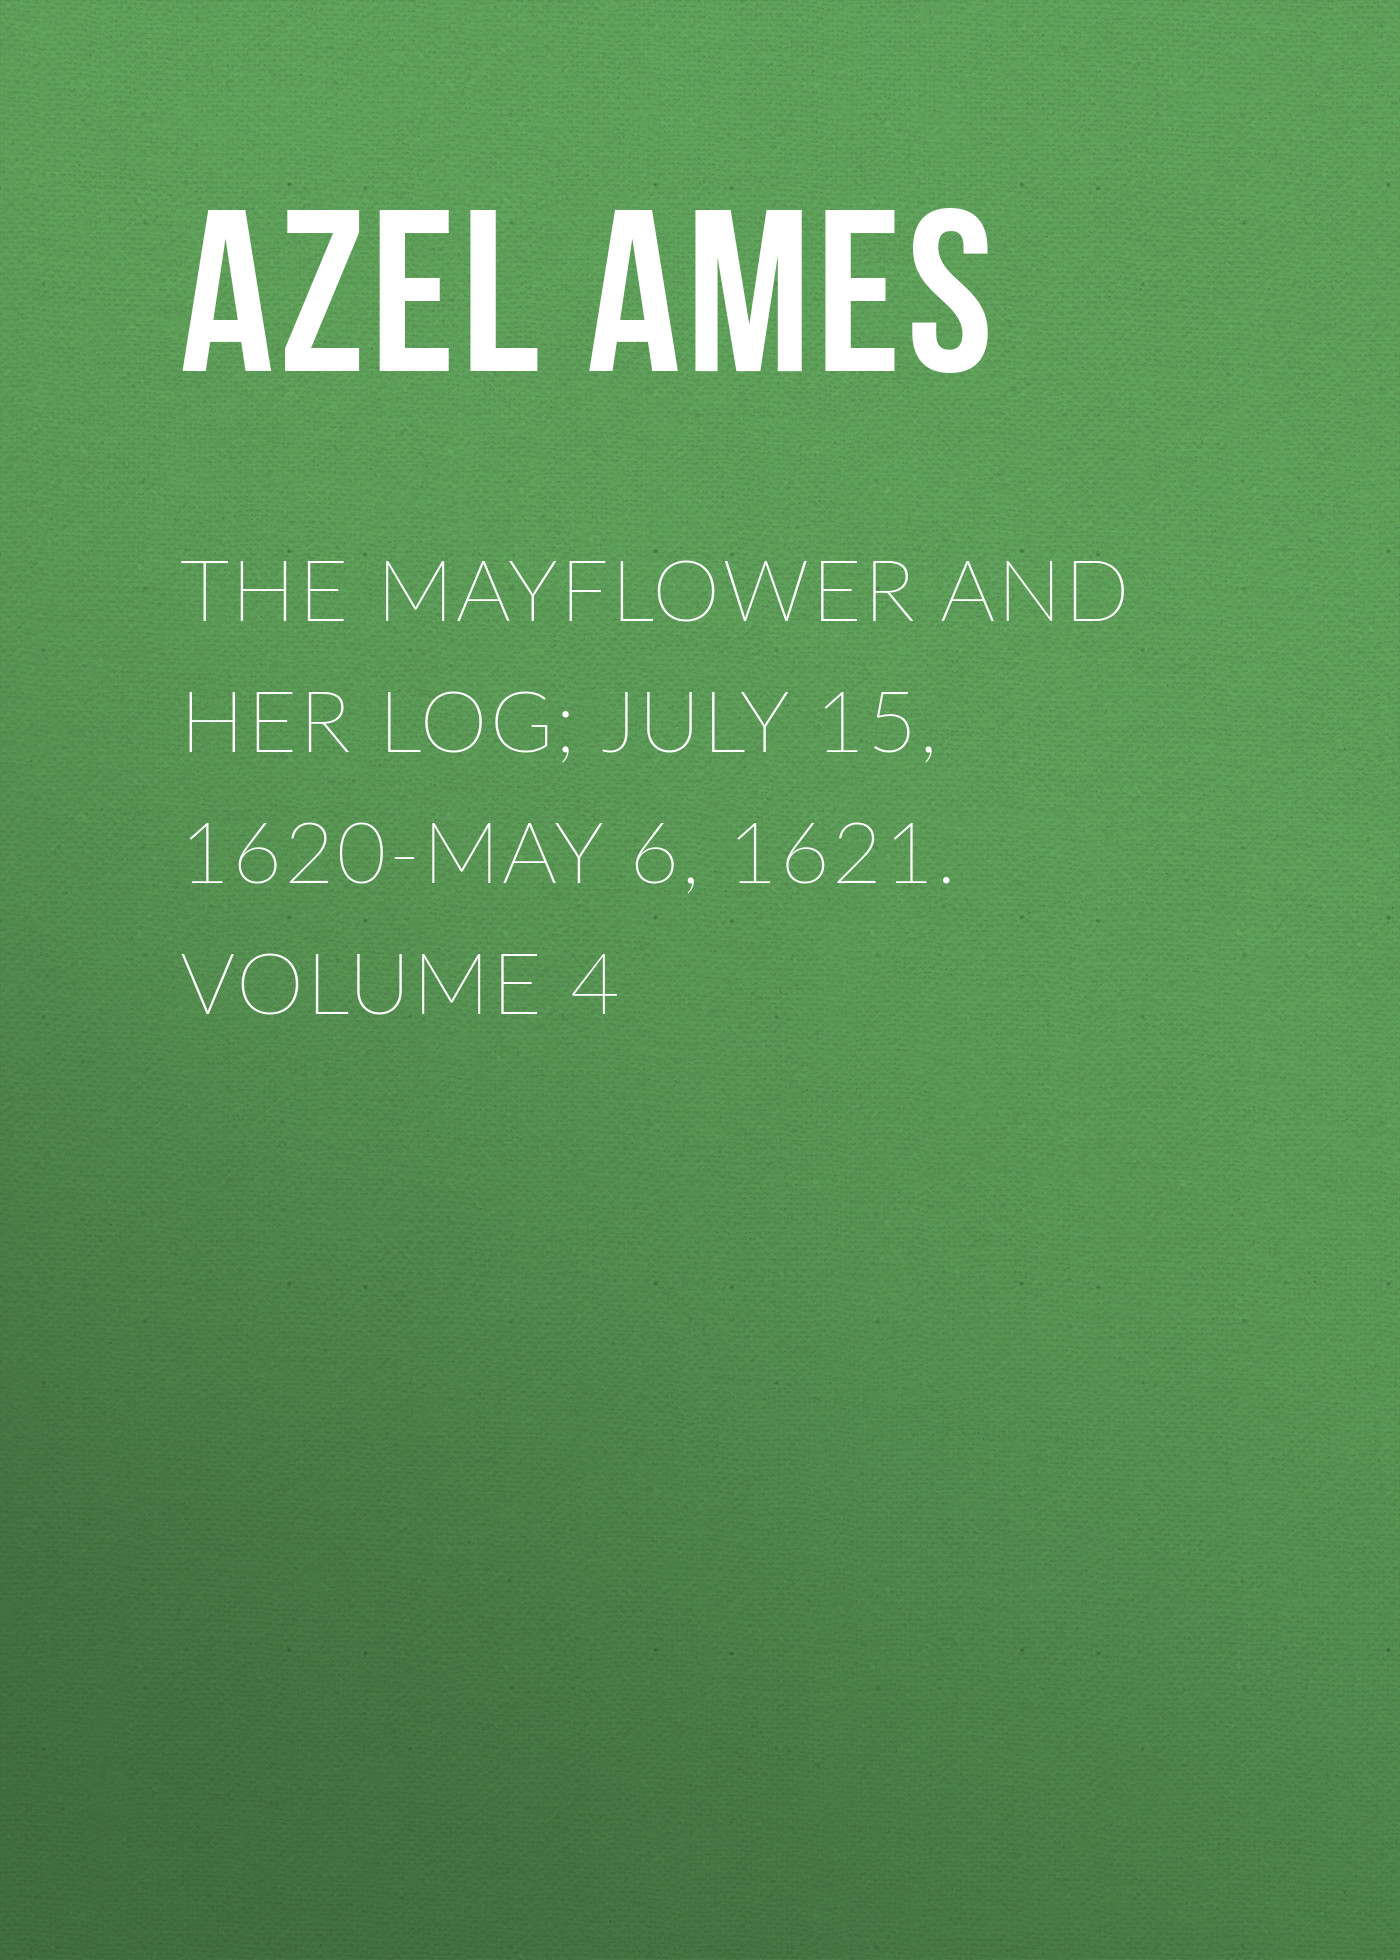 Azel Ames The Mayflower and Her Log; July 15, 1620-May 6, 1621. Volume 4 ardsley ames encounter the poet